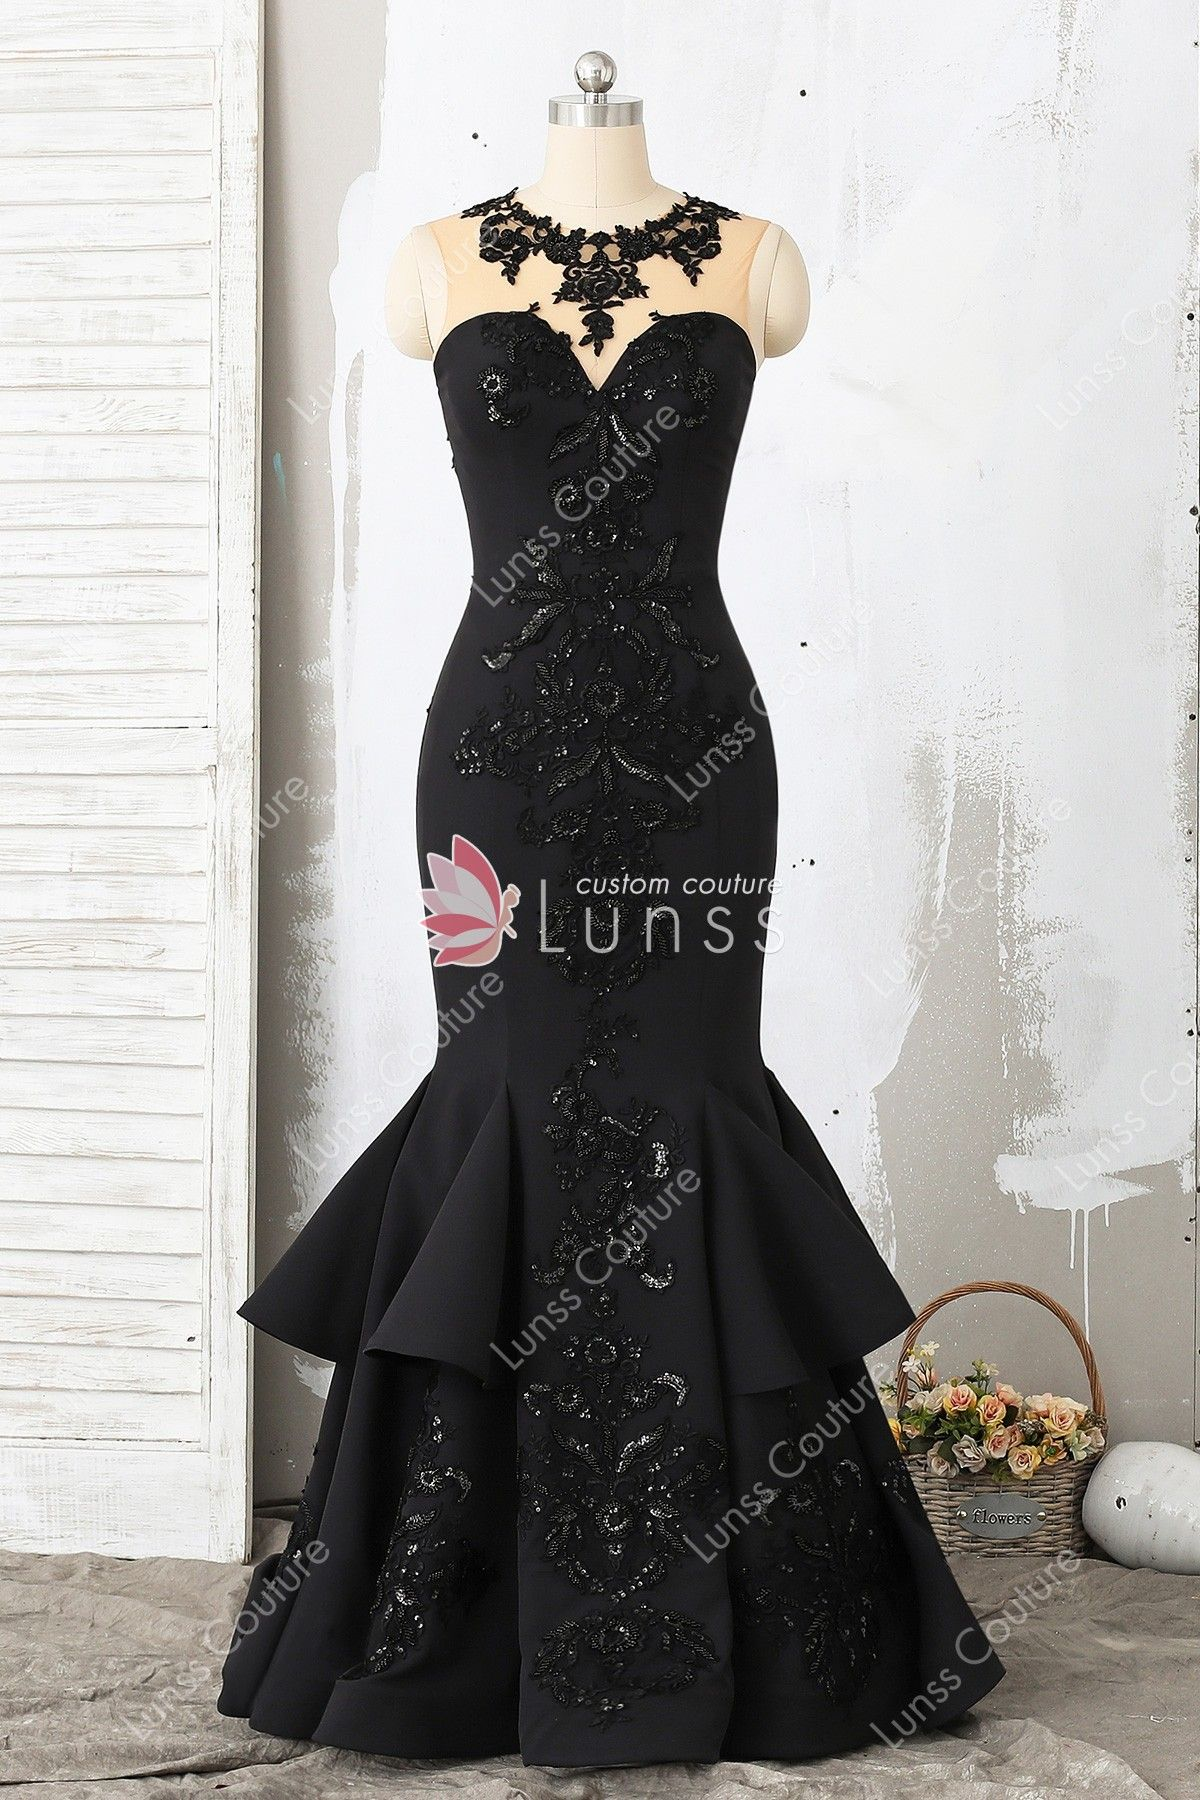 ad38d320a057b9 This classic black satin sleeveless floor length trumpet prom dress  features illusion neck bodice decorated with